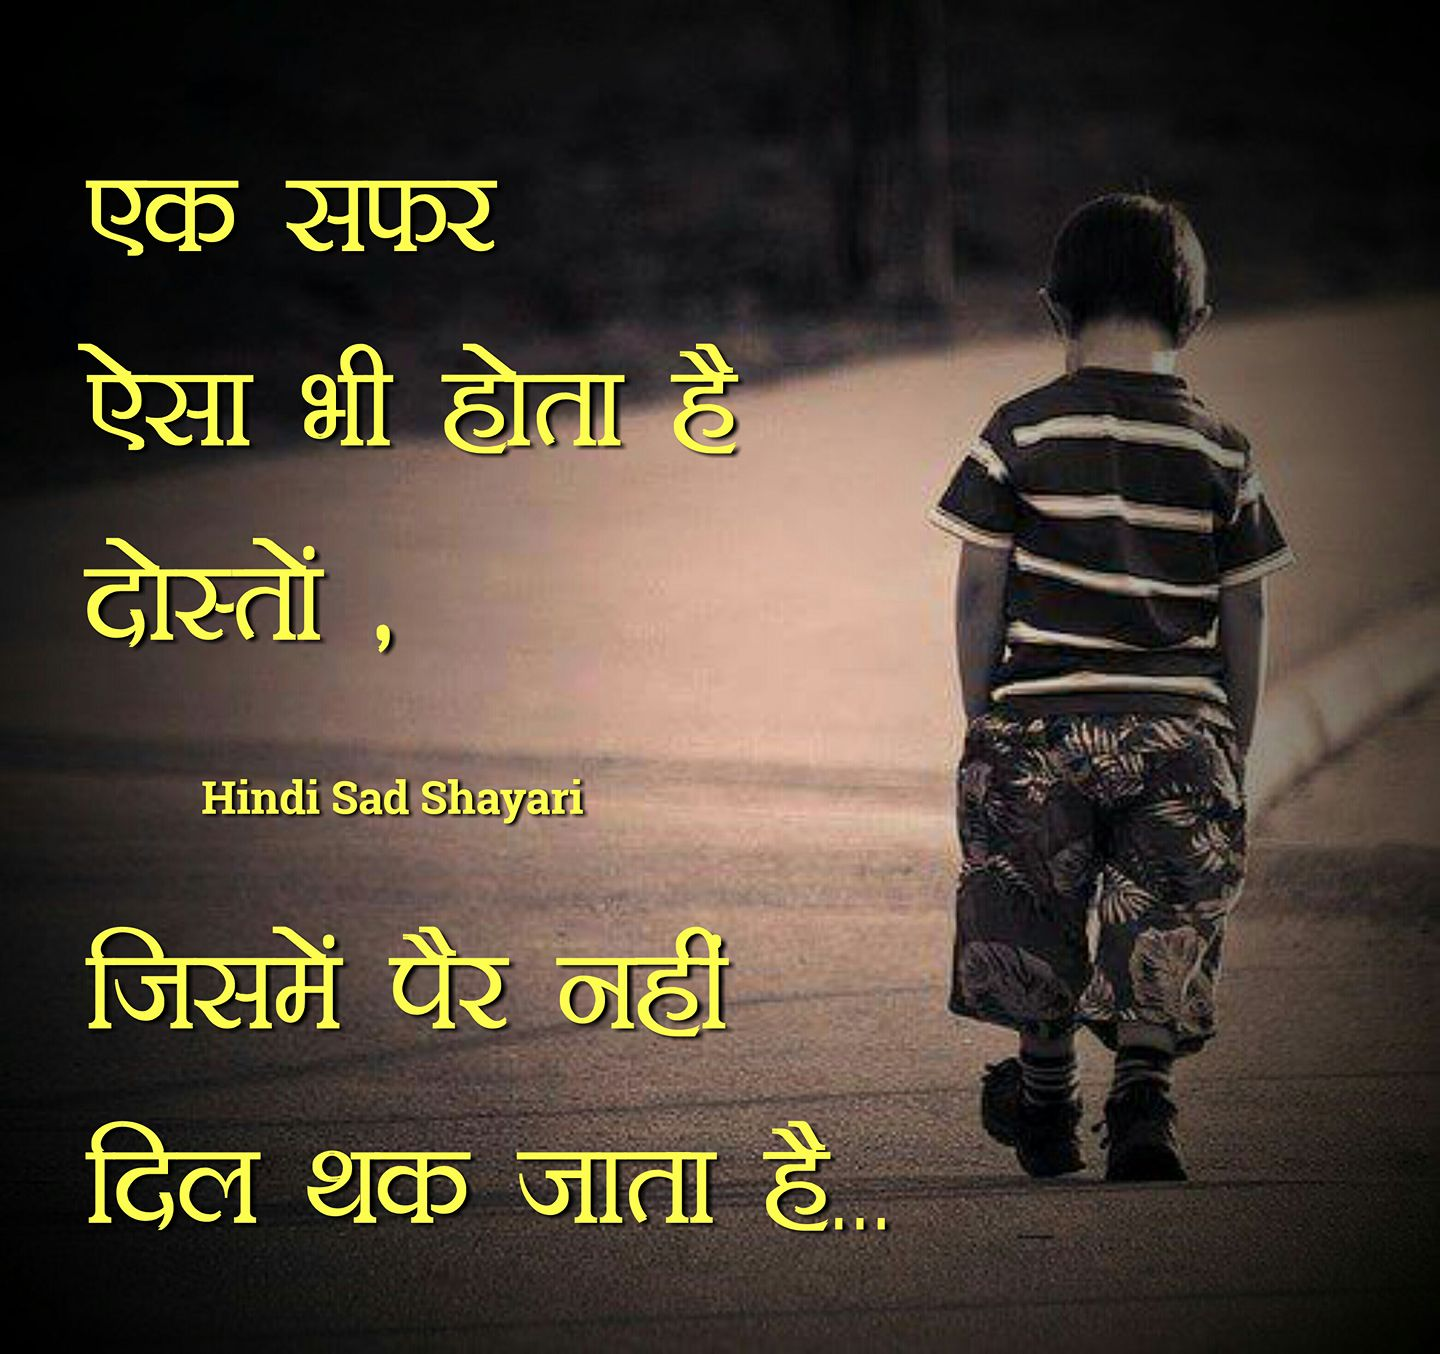 Alone Sad Quotes In Hindi: 2 Line Romantic Shayari In Hindi